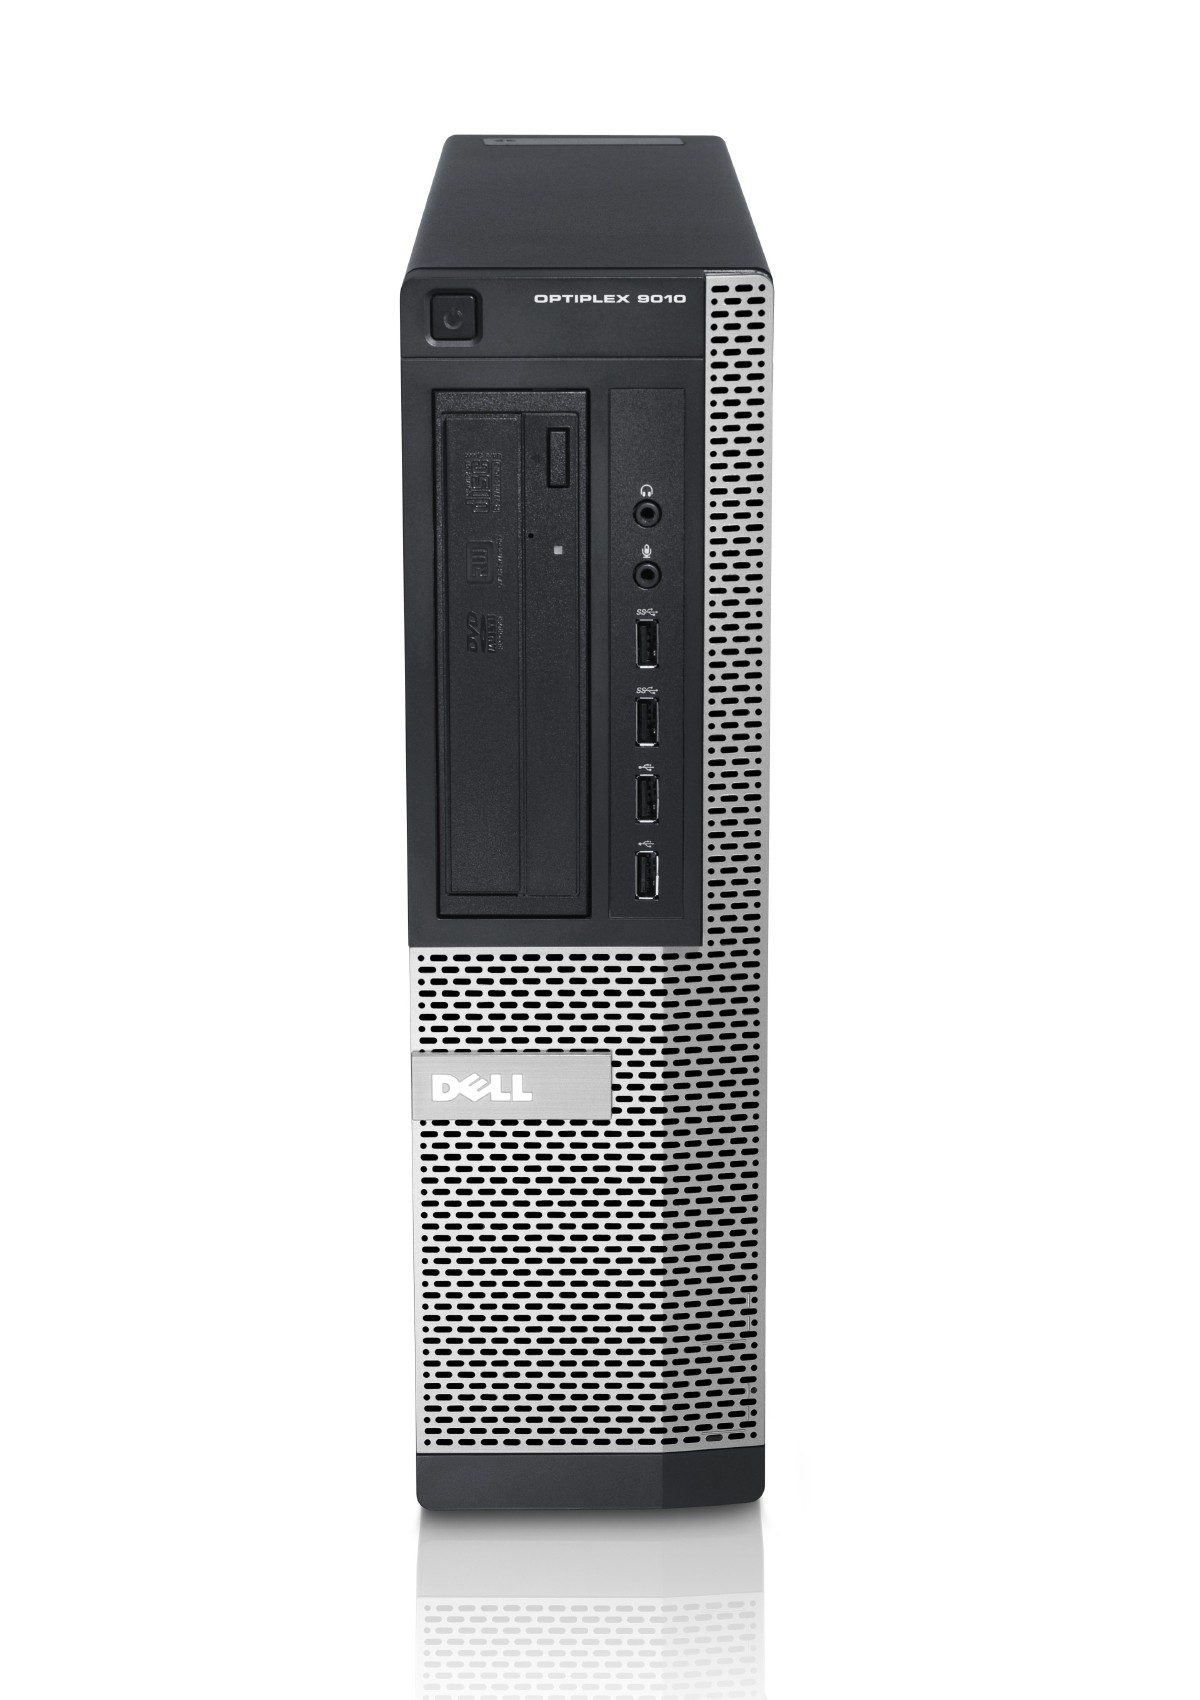 DELL-OPT-9010-i7-8GB-DT-Refurbished Dell OptiPlex 9010 DT Desktop Computer 1 TB HDD 8 GB RAM Windows 10-image